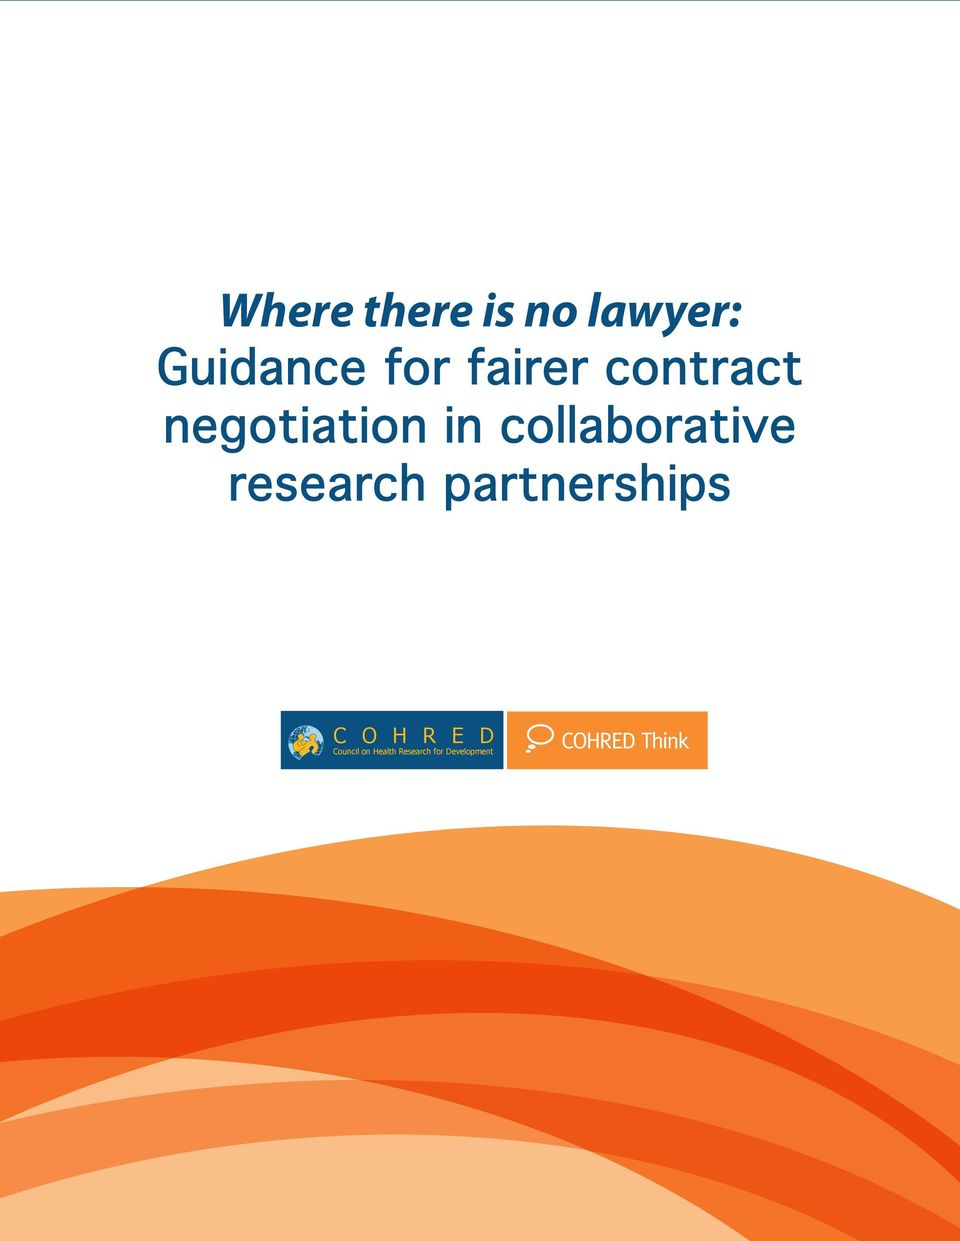 collaborative research partnerships C O